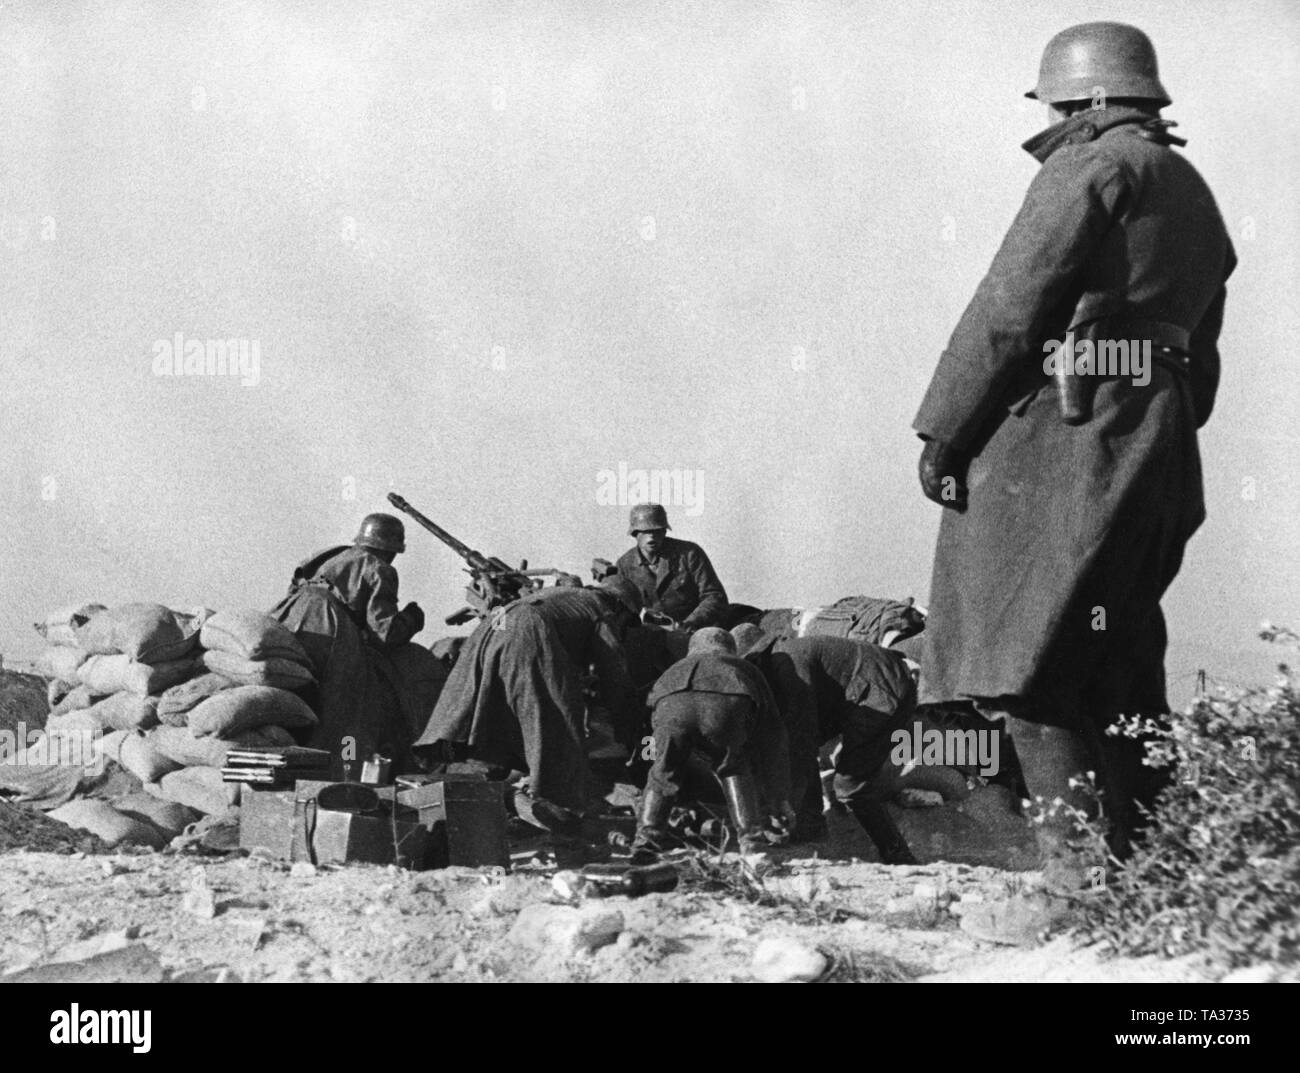 Undated photo of an anti-aircraft unit of the Condor Legion in a ground attack. The soldiers use a 2cm Flak 30 for the operation. The position is protected by sandbags. In the foreground, a standing officer. The soldiers are wearing M35 steel helmets. - Stock Image